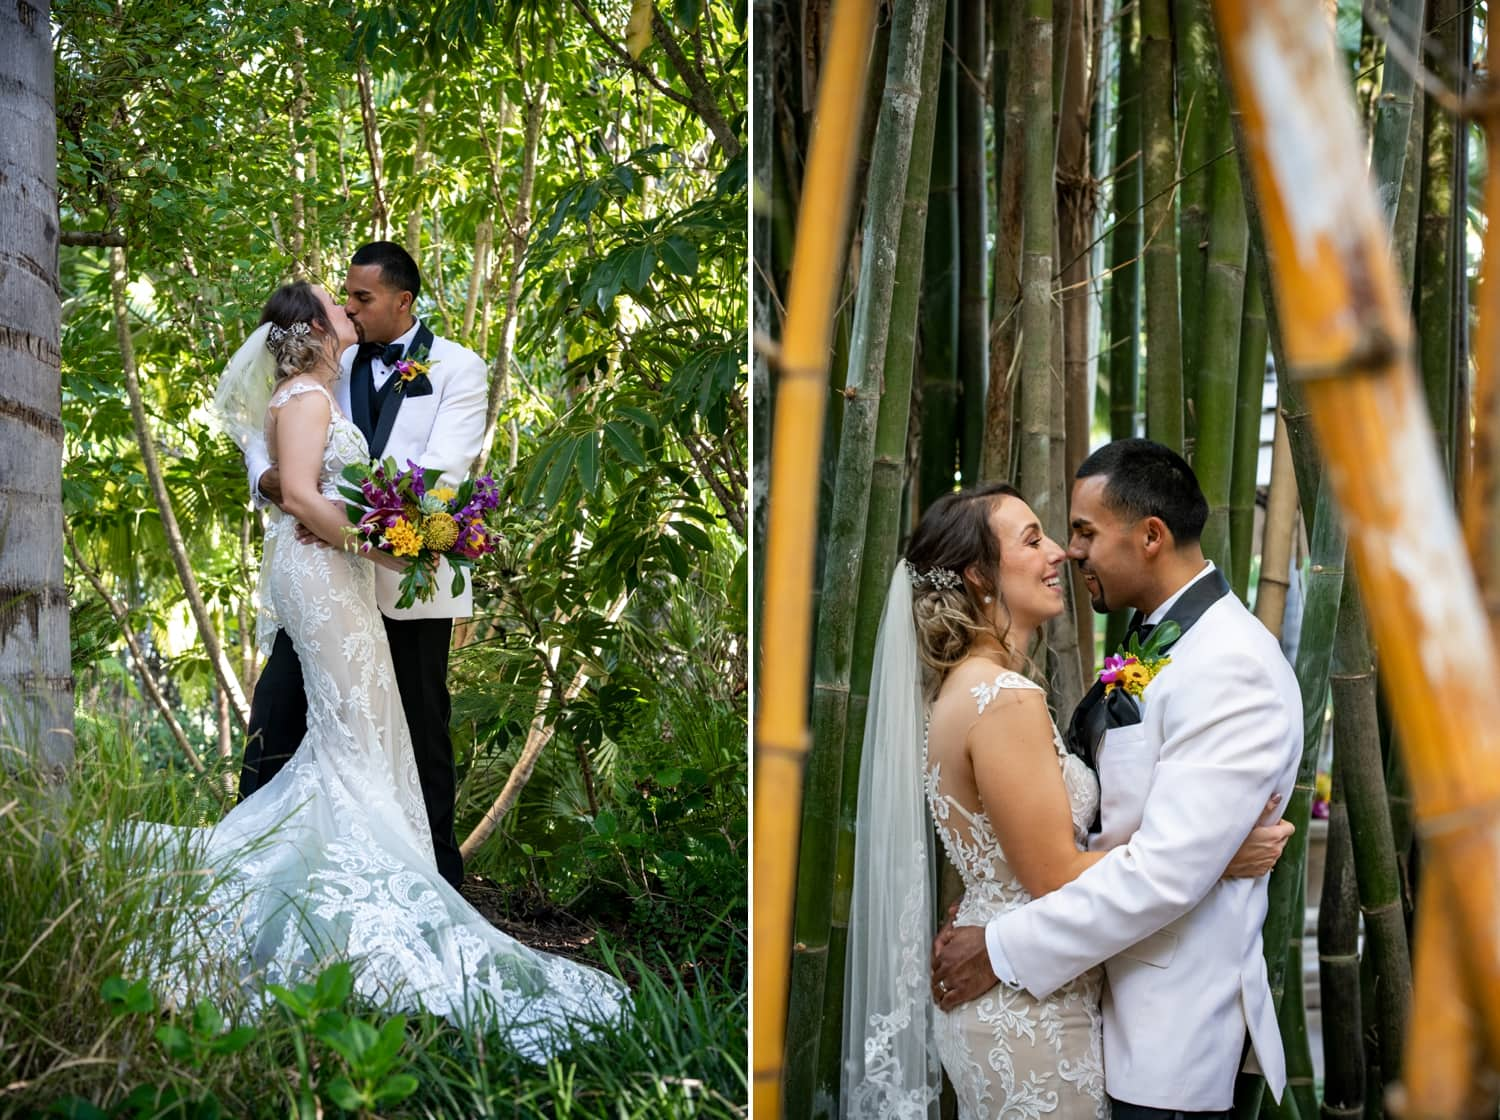 Bride and groom standing in the bamboo at Grand Tradition Estate.